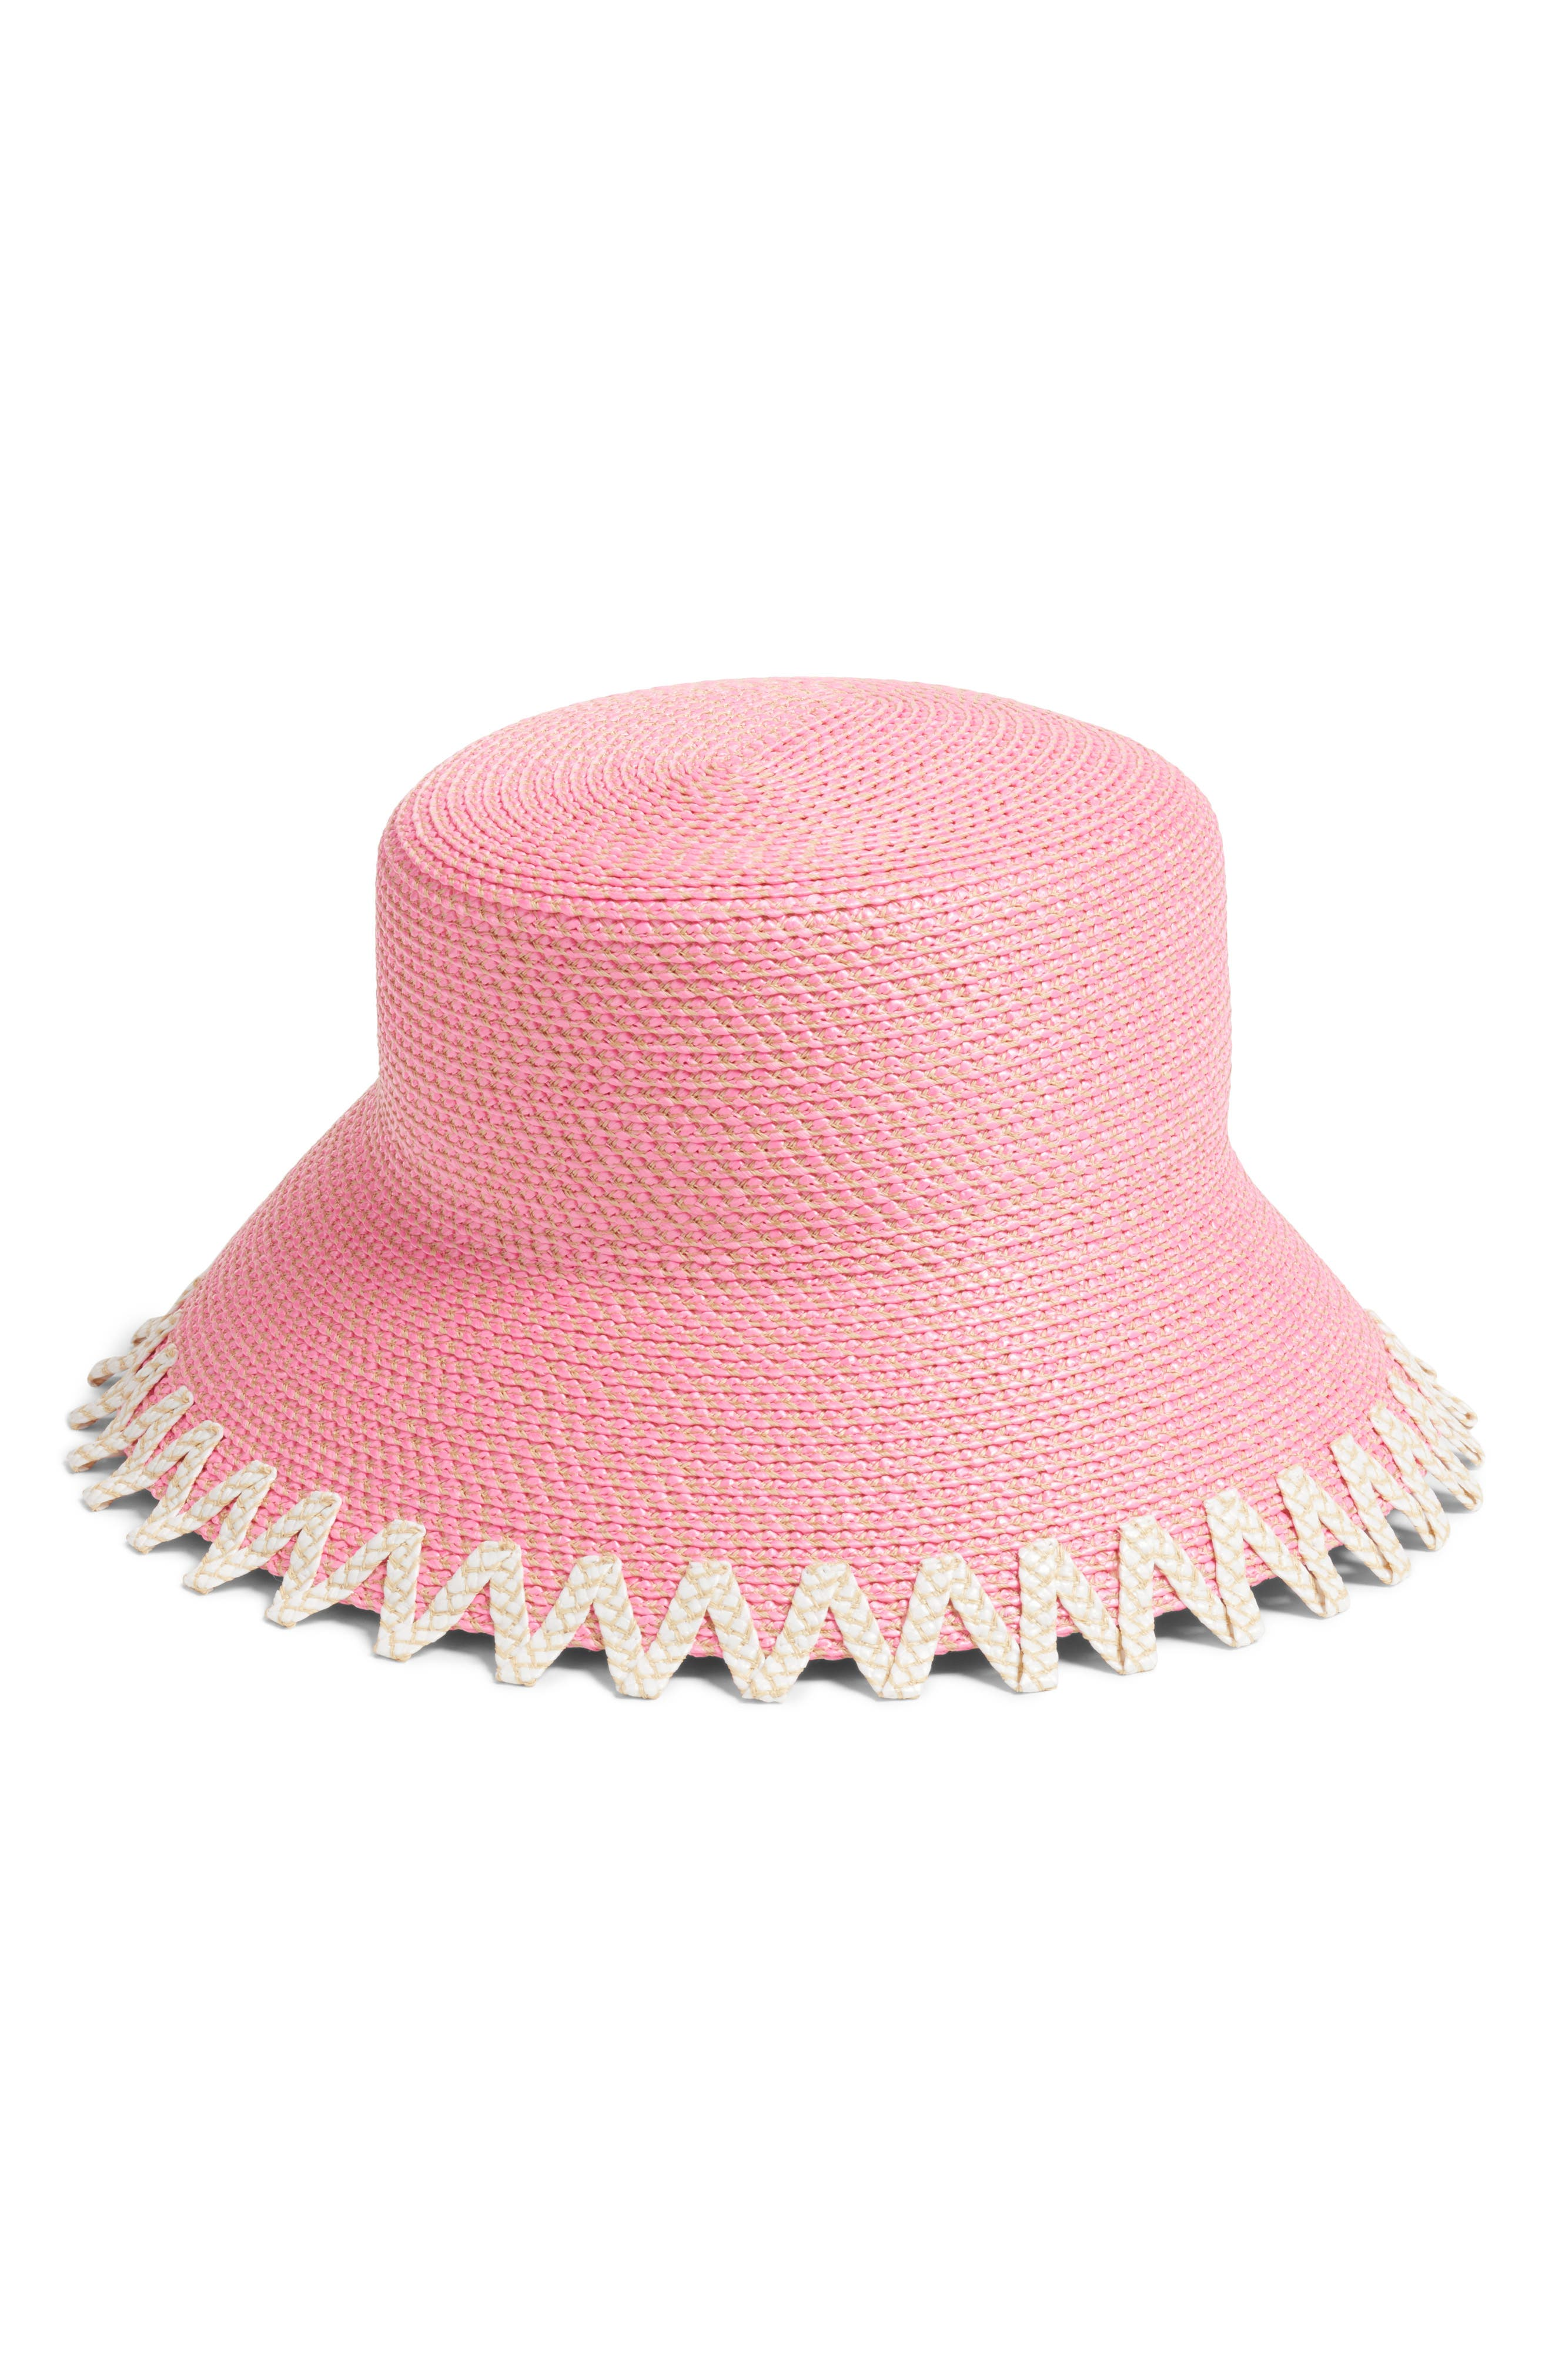 Eloise Squishee<sup>®</sup> Bucket Hat,                         Main,                         color, Pink Mix